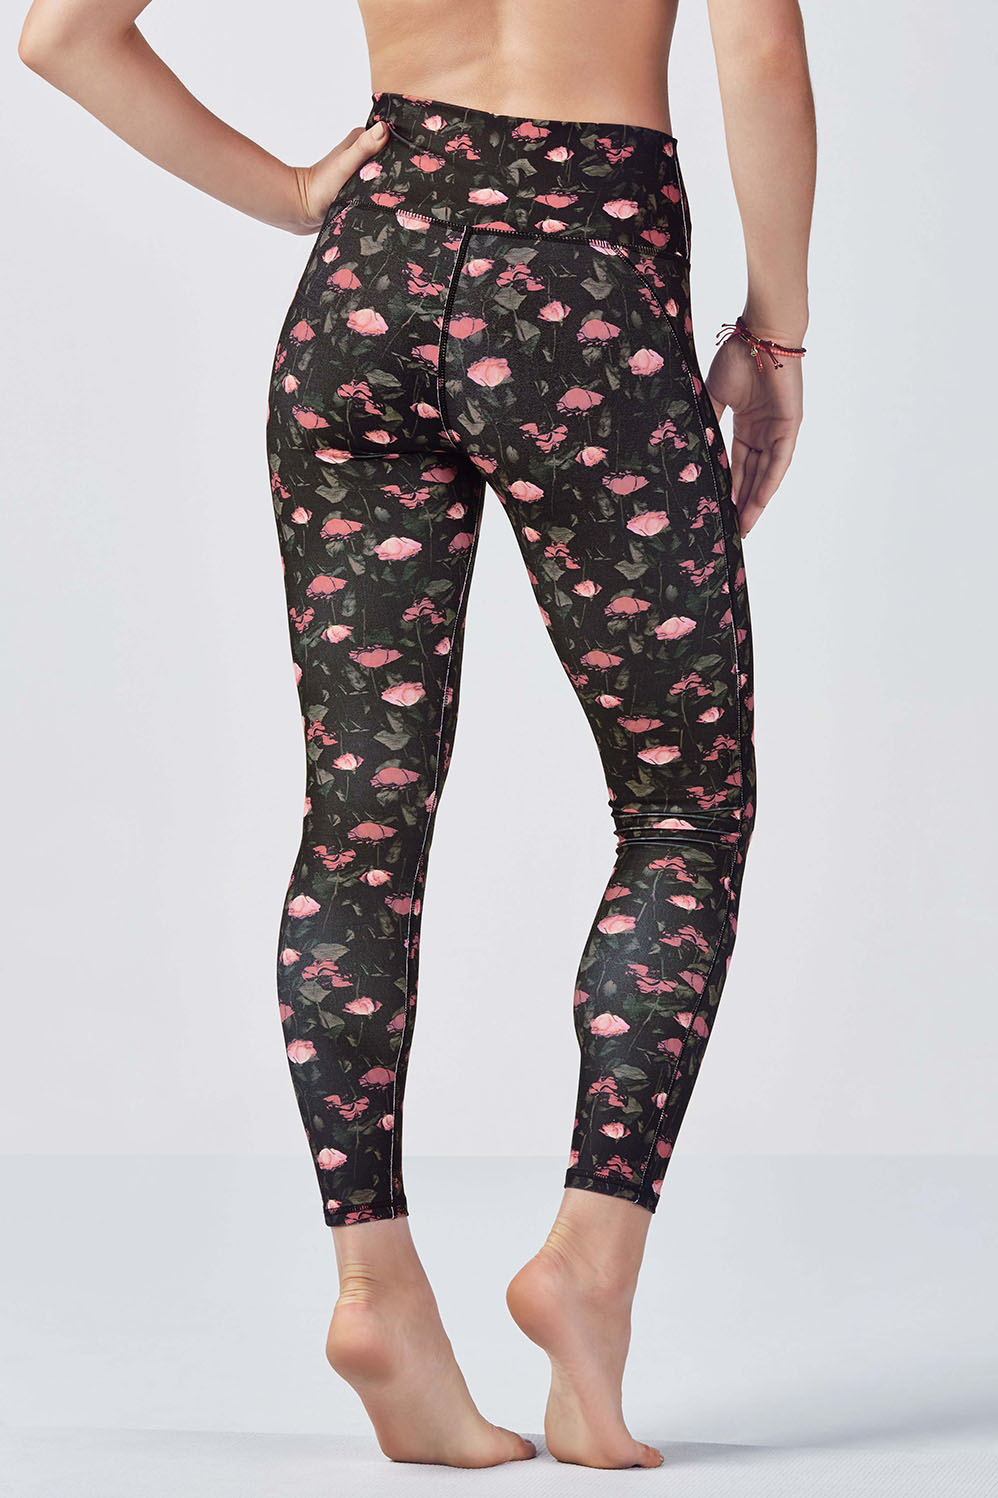 ace7766f41471 High-Waisted Printed PowerHold® 7/8 - Rose Romance Small